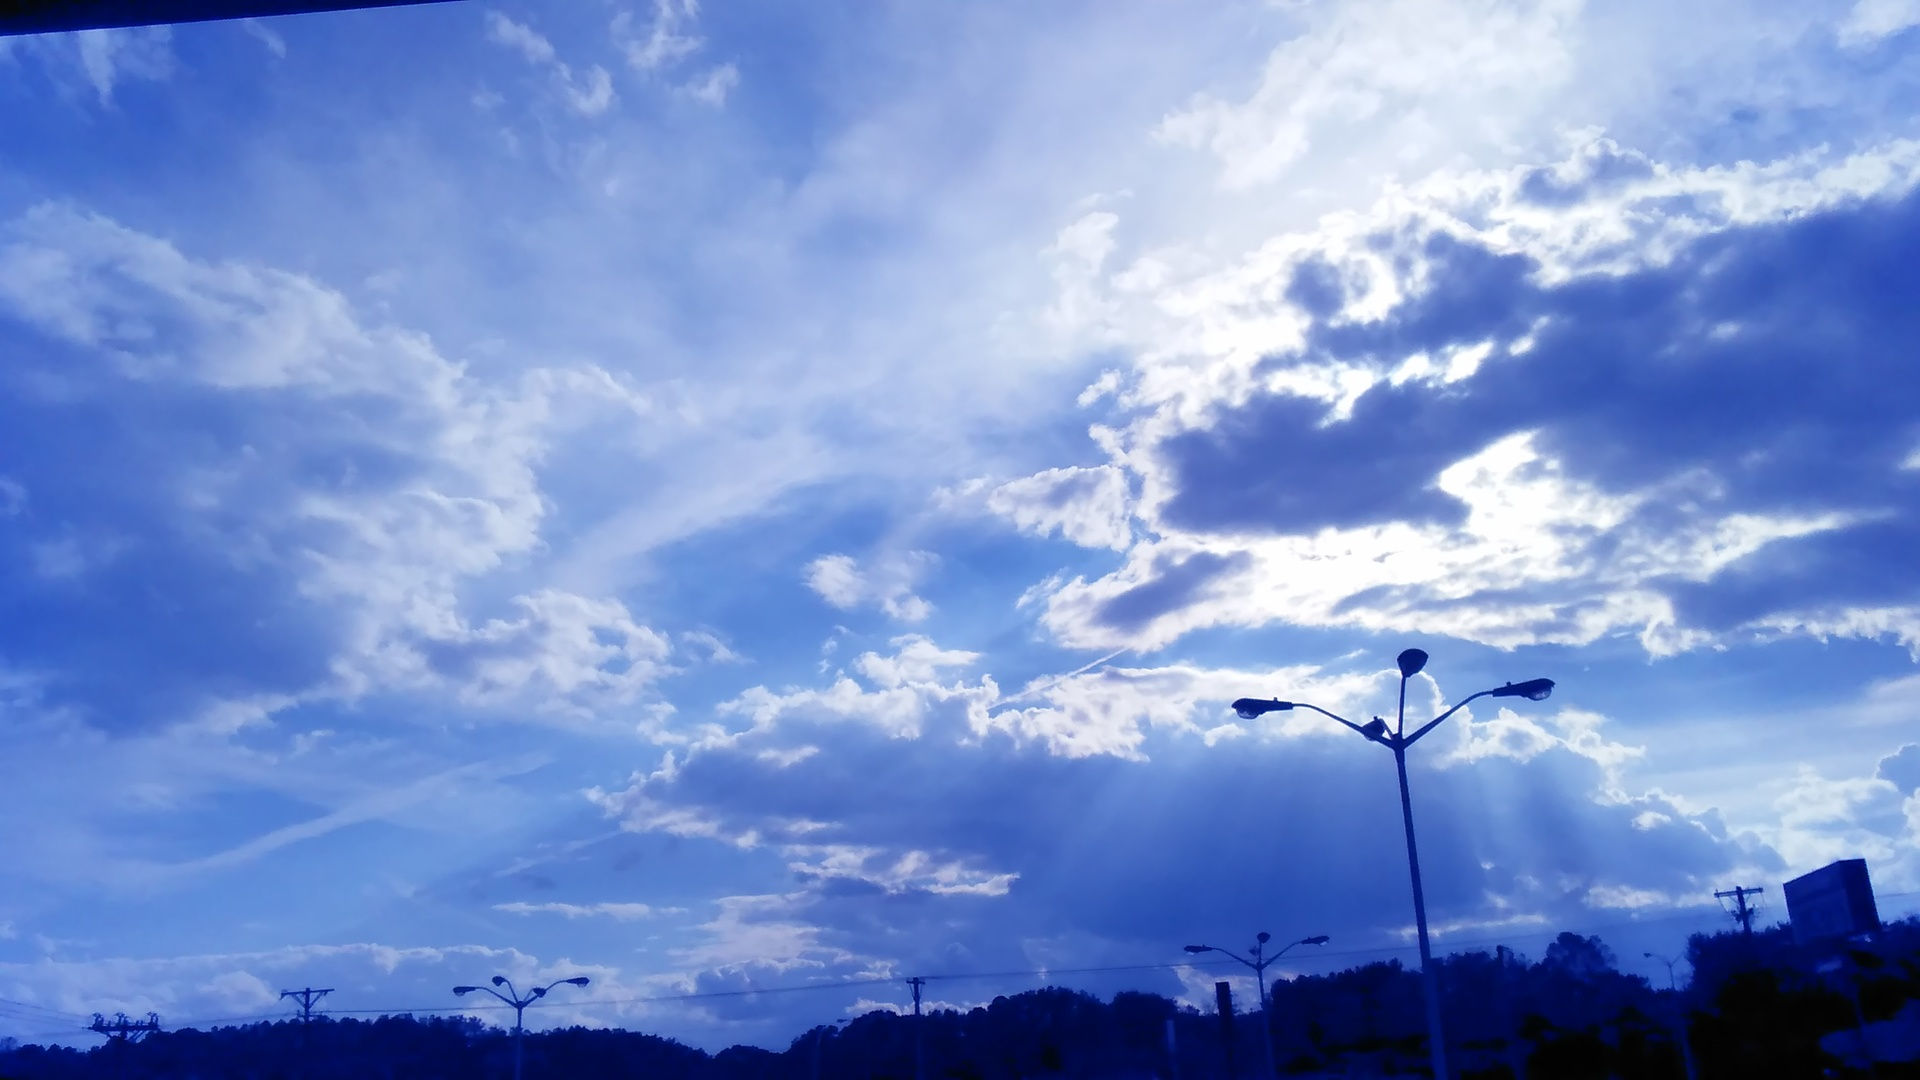 Sky over parking lot | codenamesailorearth, background, cloud, energy